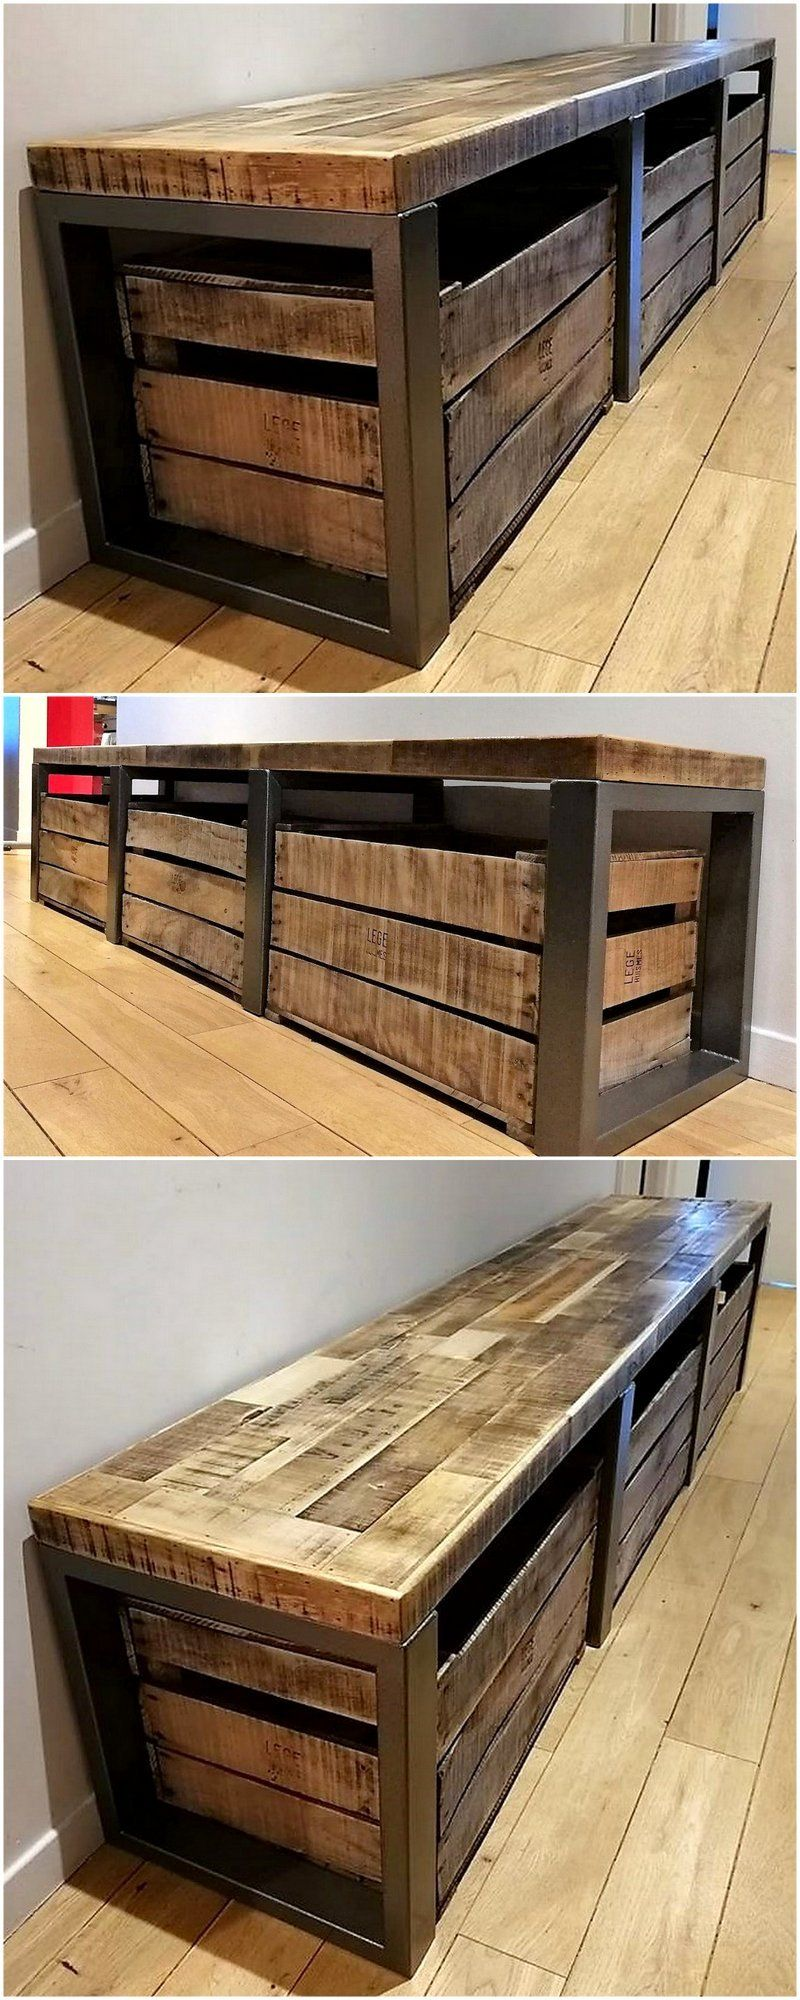 usable ideas for used wood pallet reusing crate bench on shoe rack wooden with door id=70104